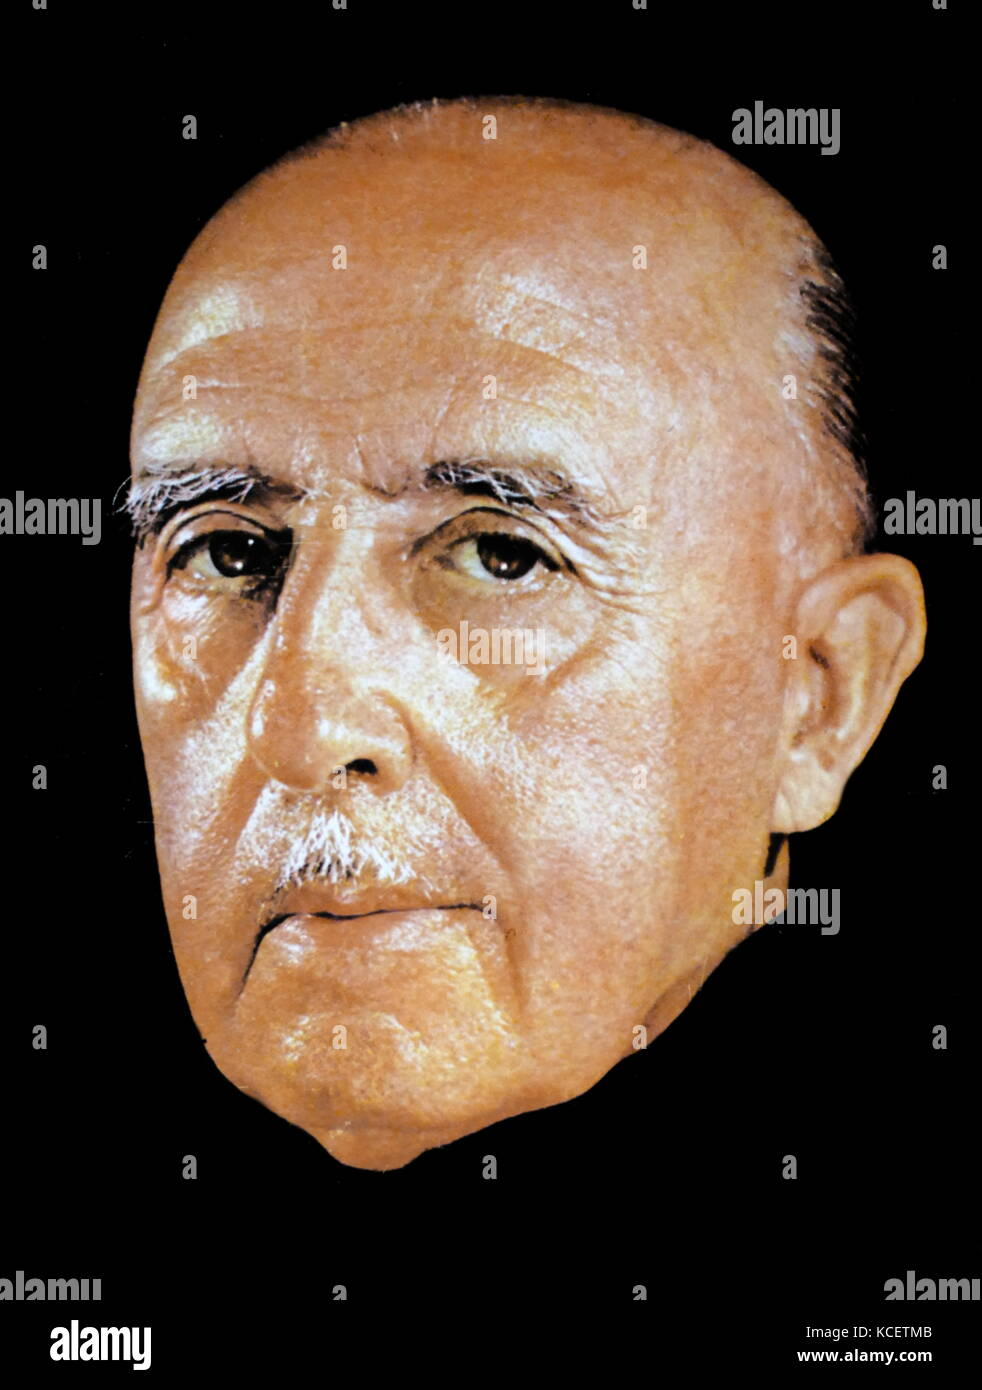 Francisco Franco Bahamonde (1892 – 1975) Spanish general, dictator and the Caudillo of Spain from 1939 until his - Stock Image